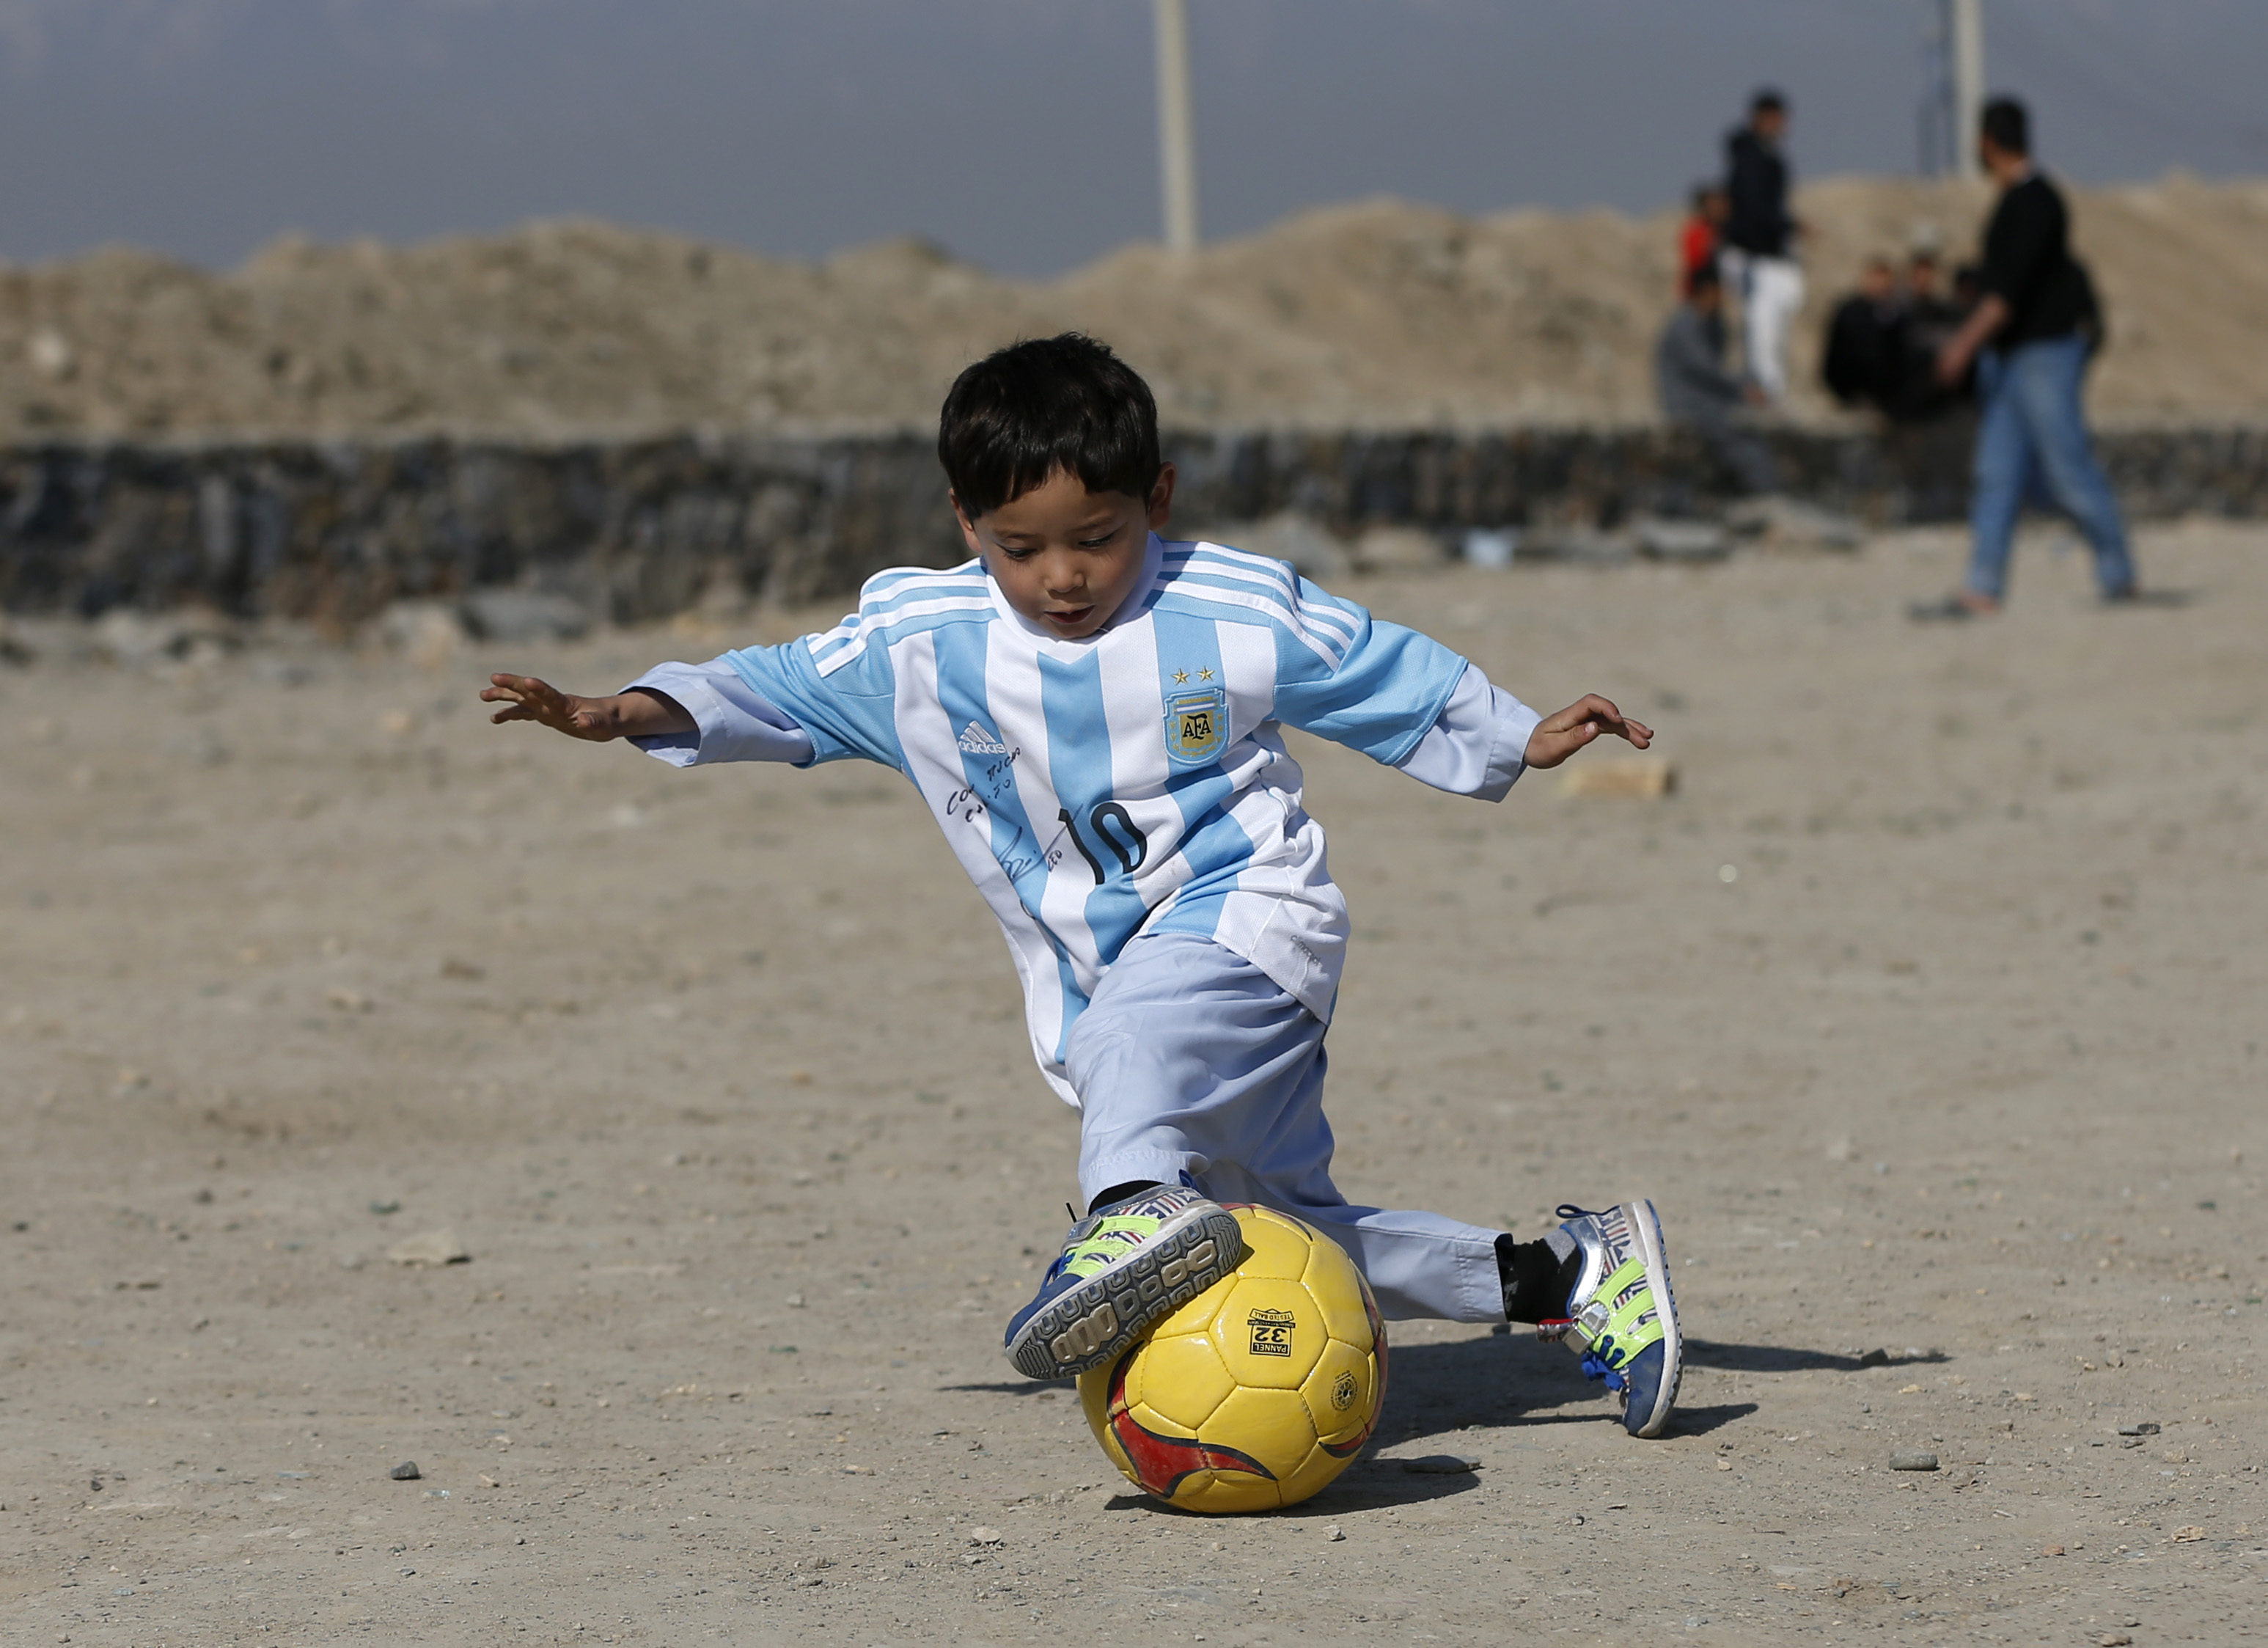 Lionel Messi Gives Murtaza Ahmadi Signed Jersey After